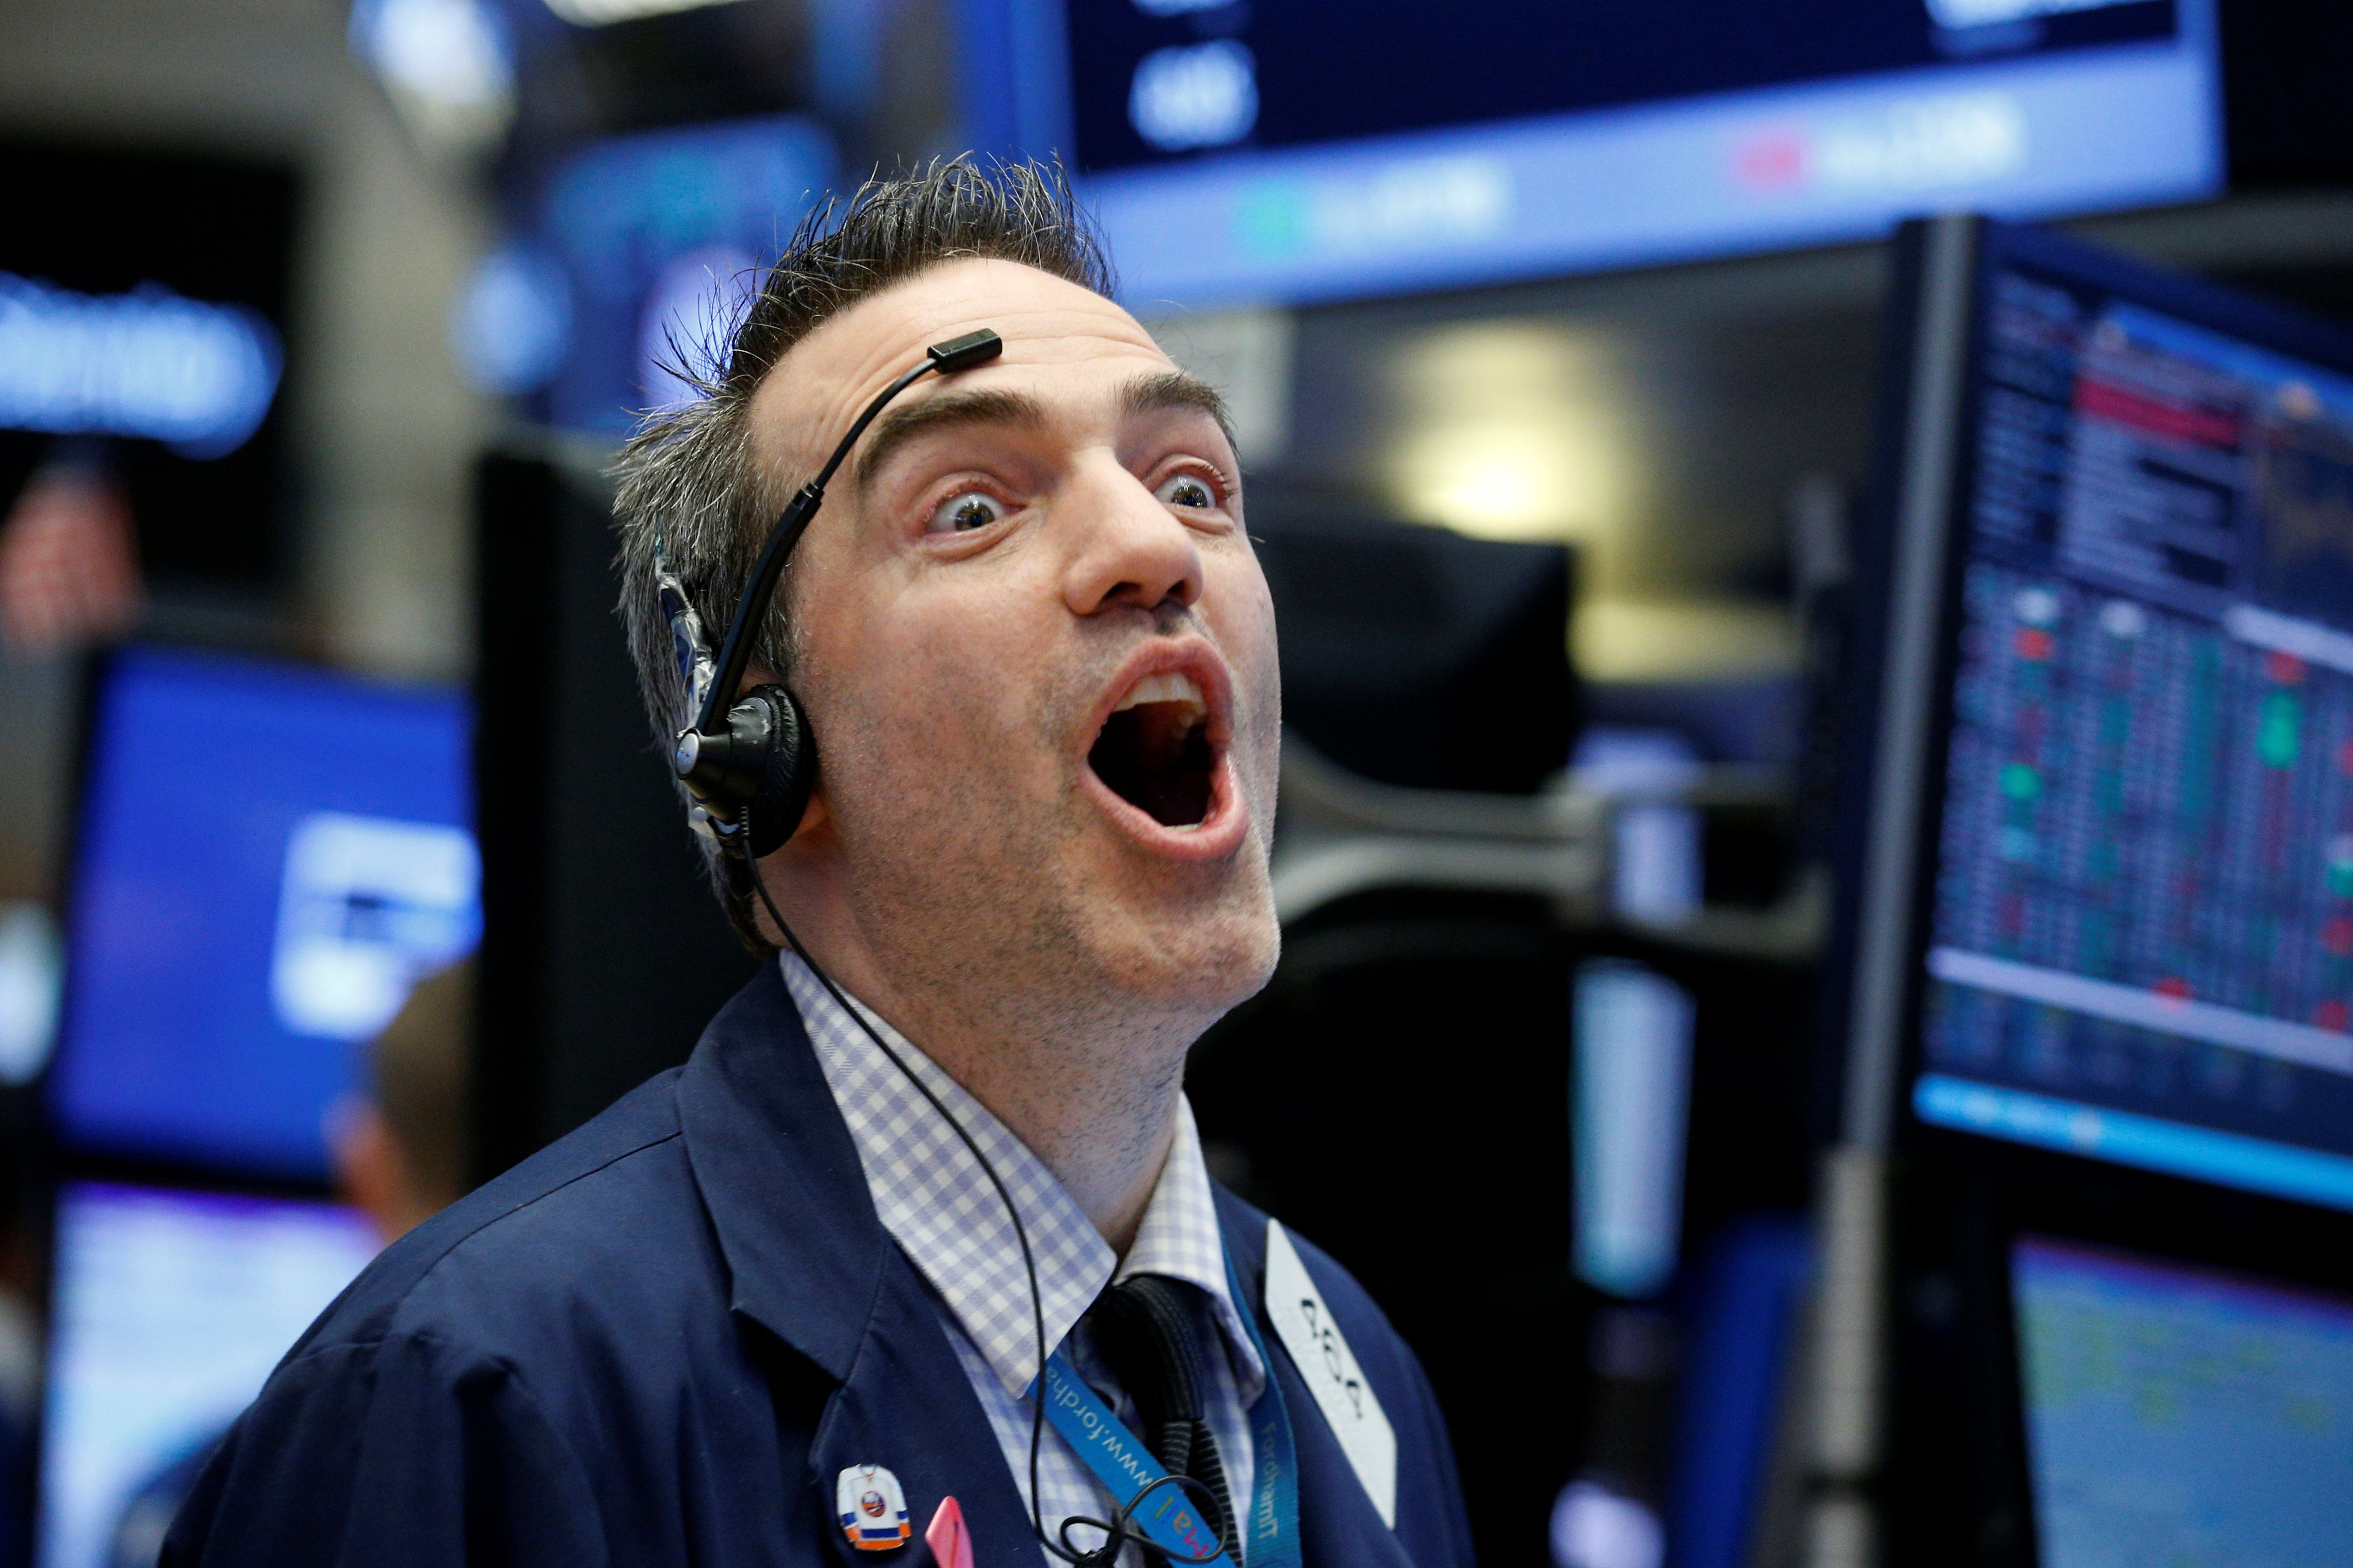 'Don't get overconfident' after Tuesday's big rally, Jim Cramer says